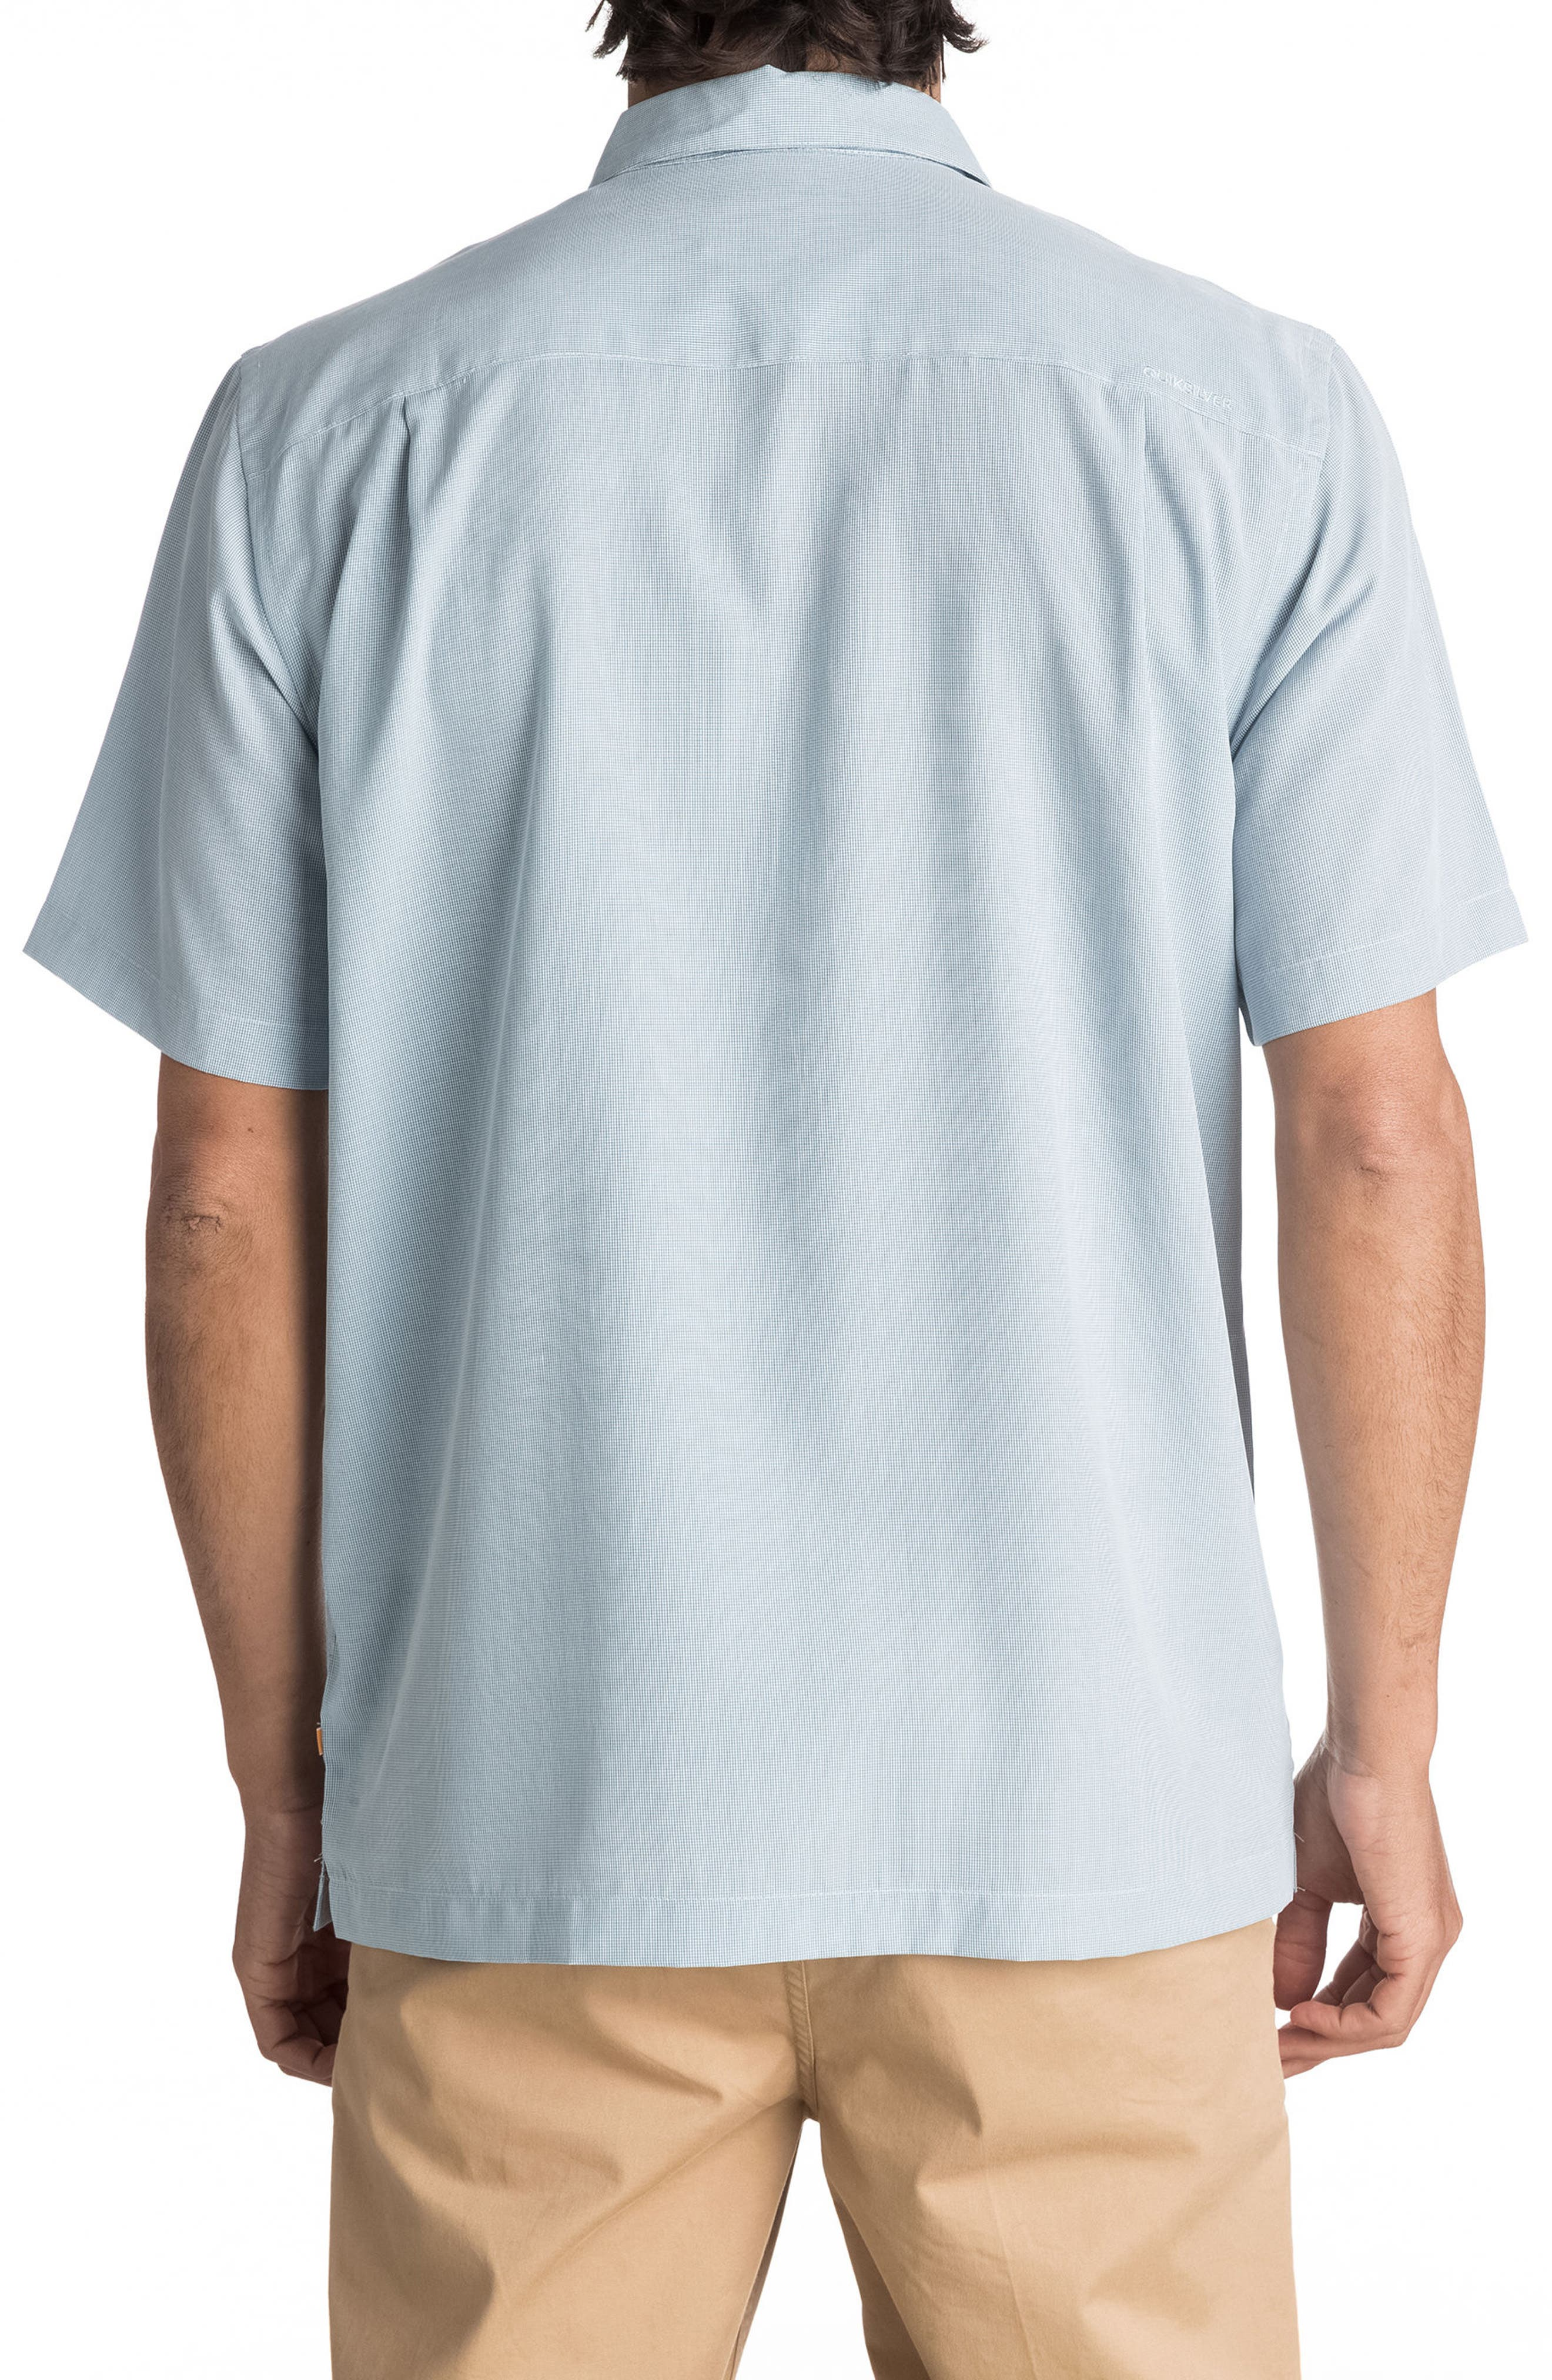 Alternate Image 2  - Quiksilver Waterman Collection 'Cane Island' Regular Fit Short Sleeve Sport Shirt